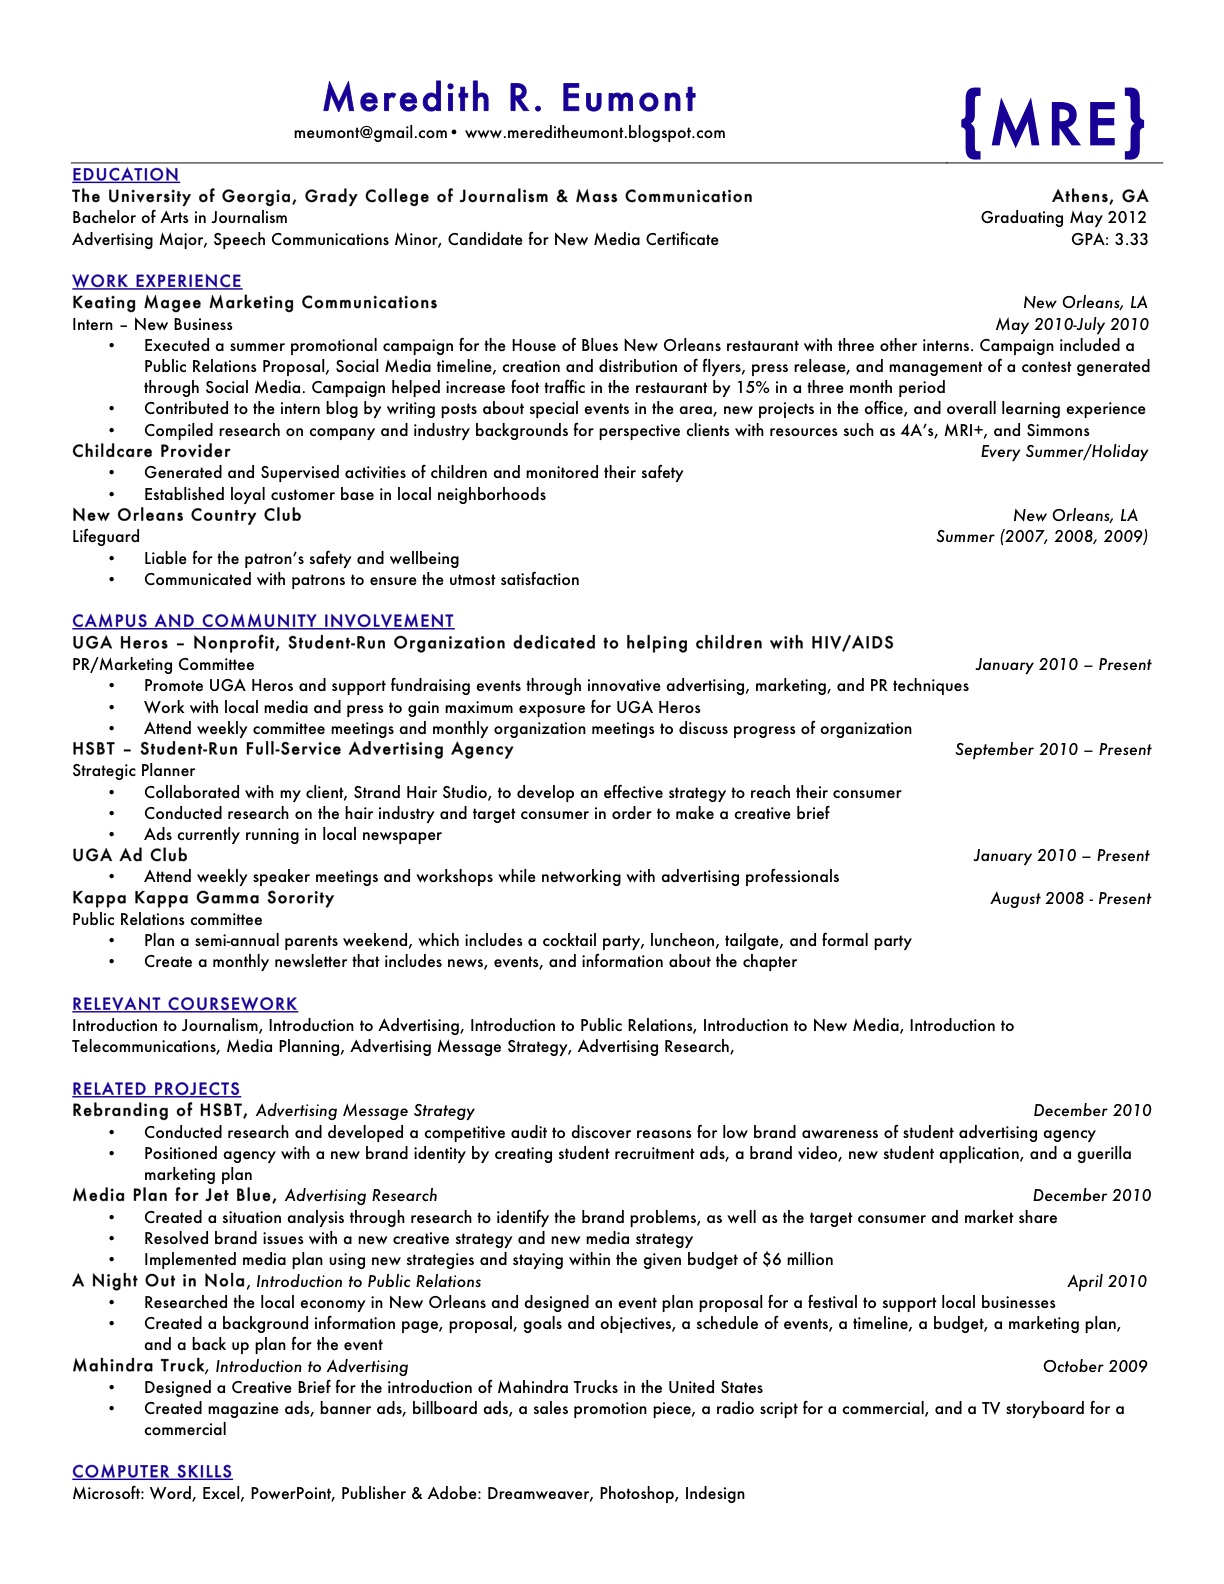 Resume with two addresses